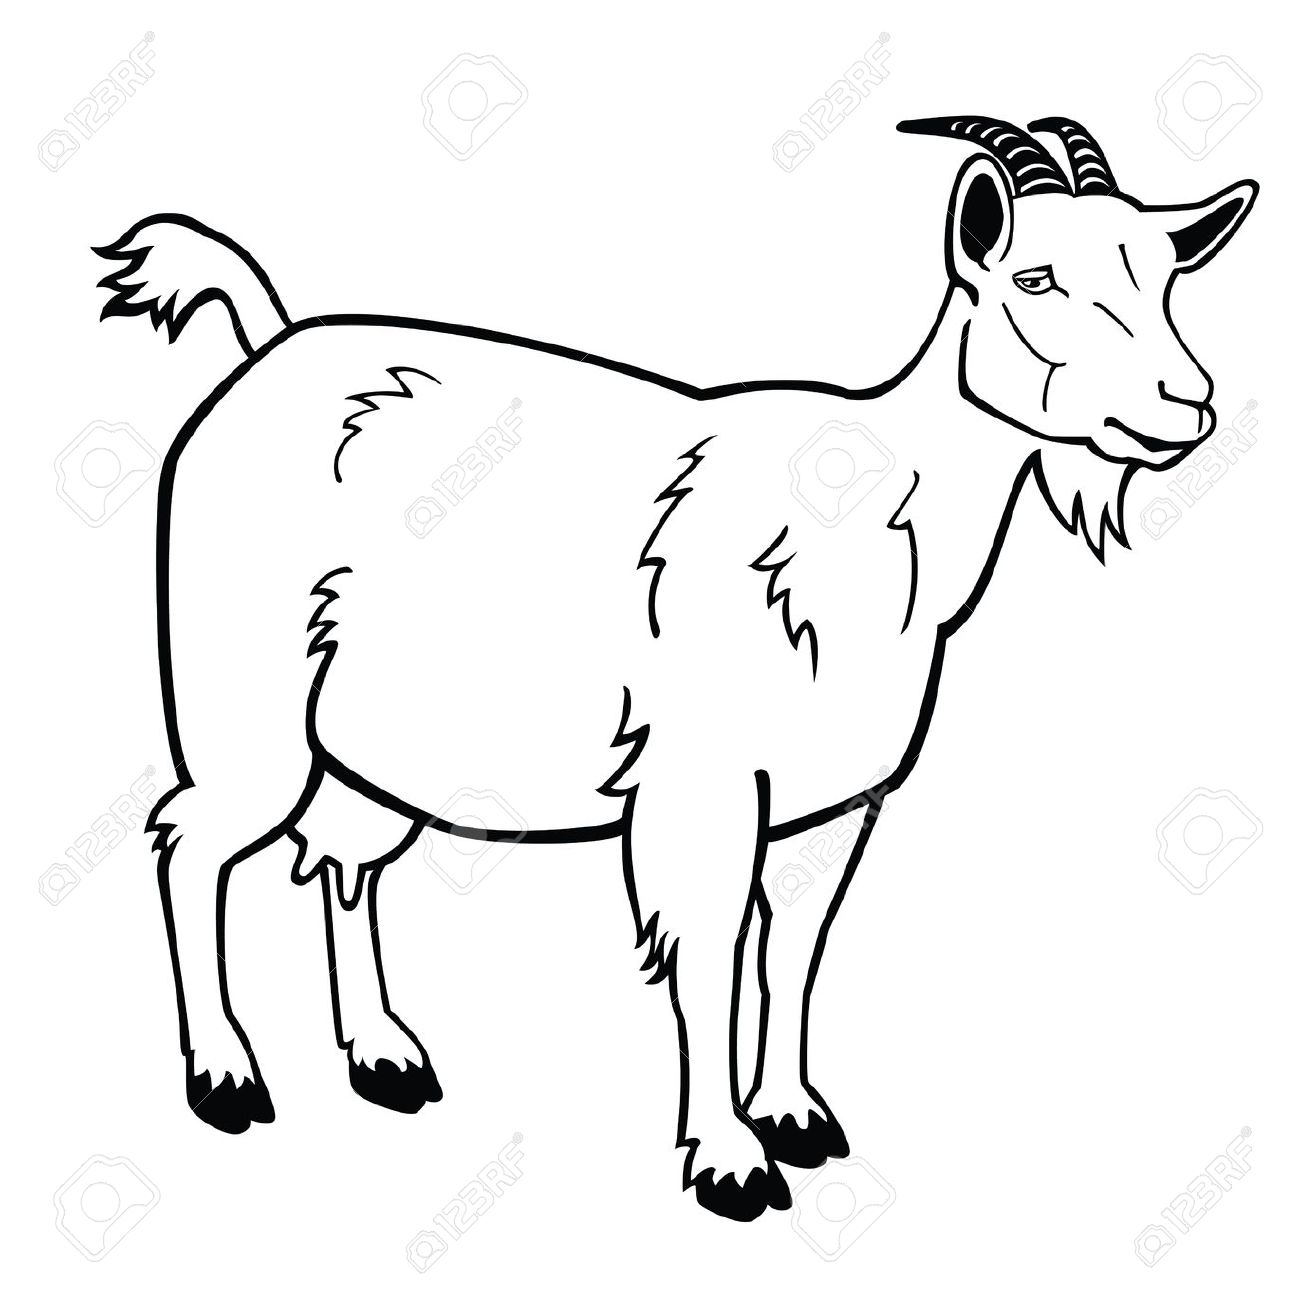 Goat clipart female goat. Black and white free